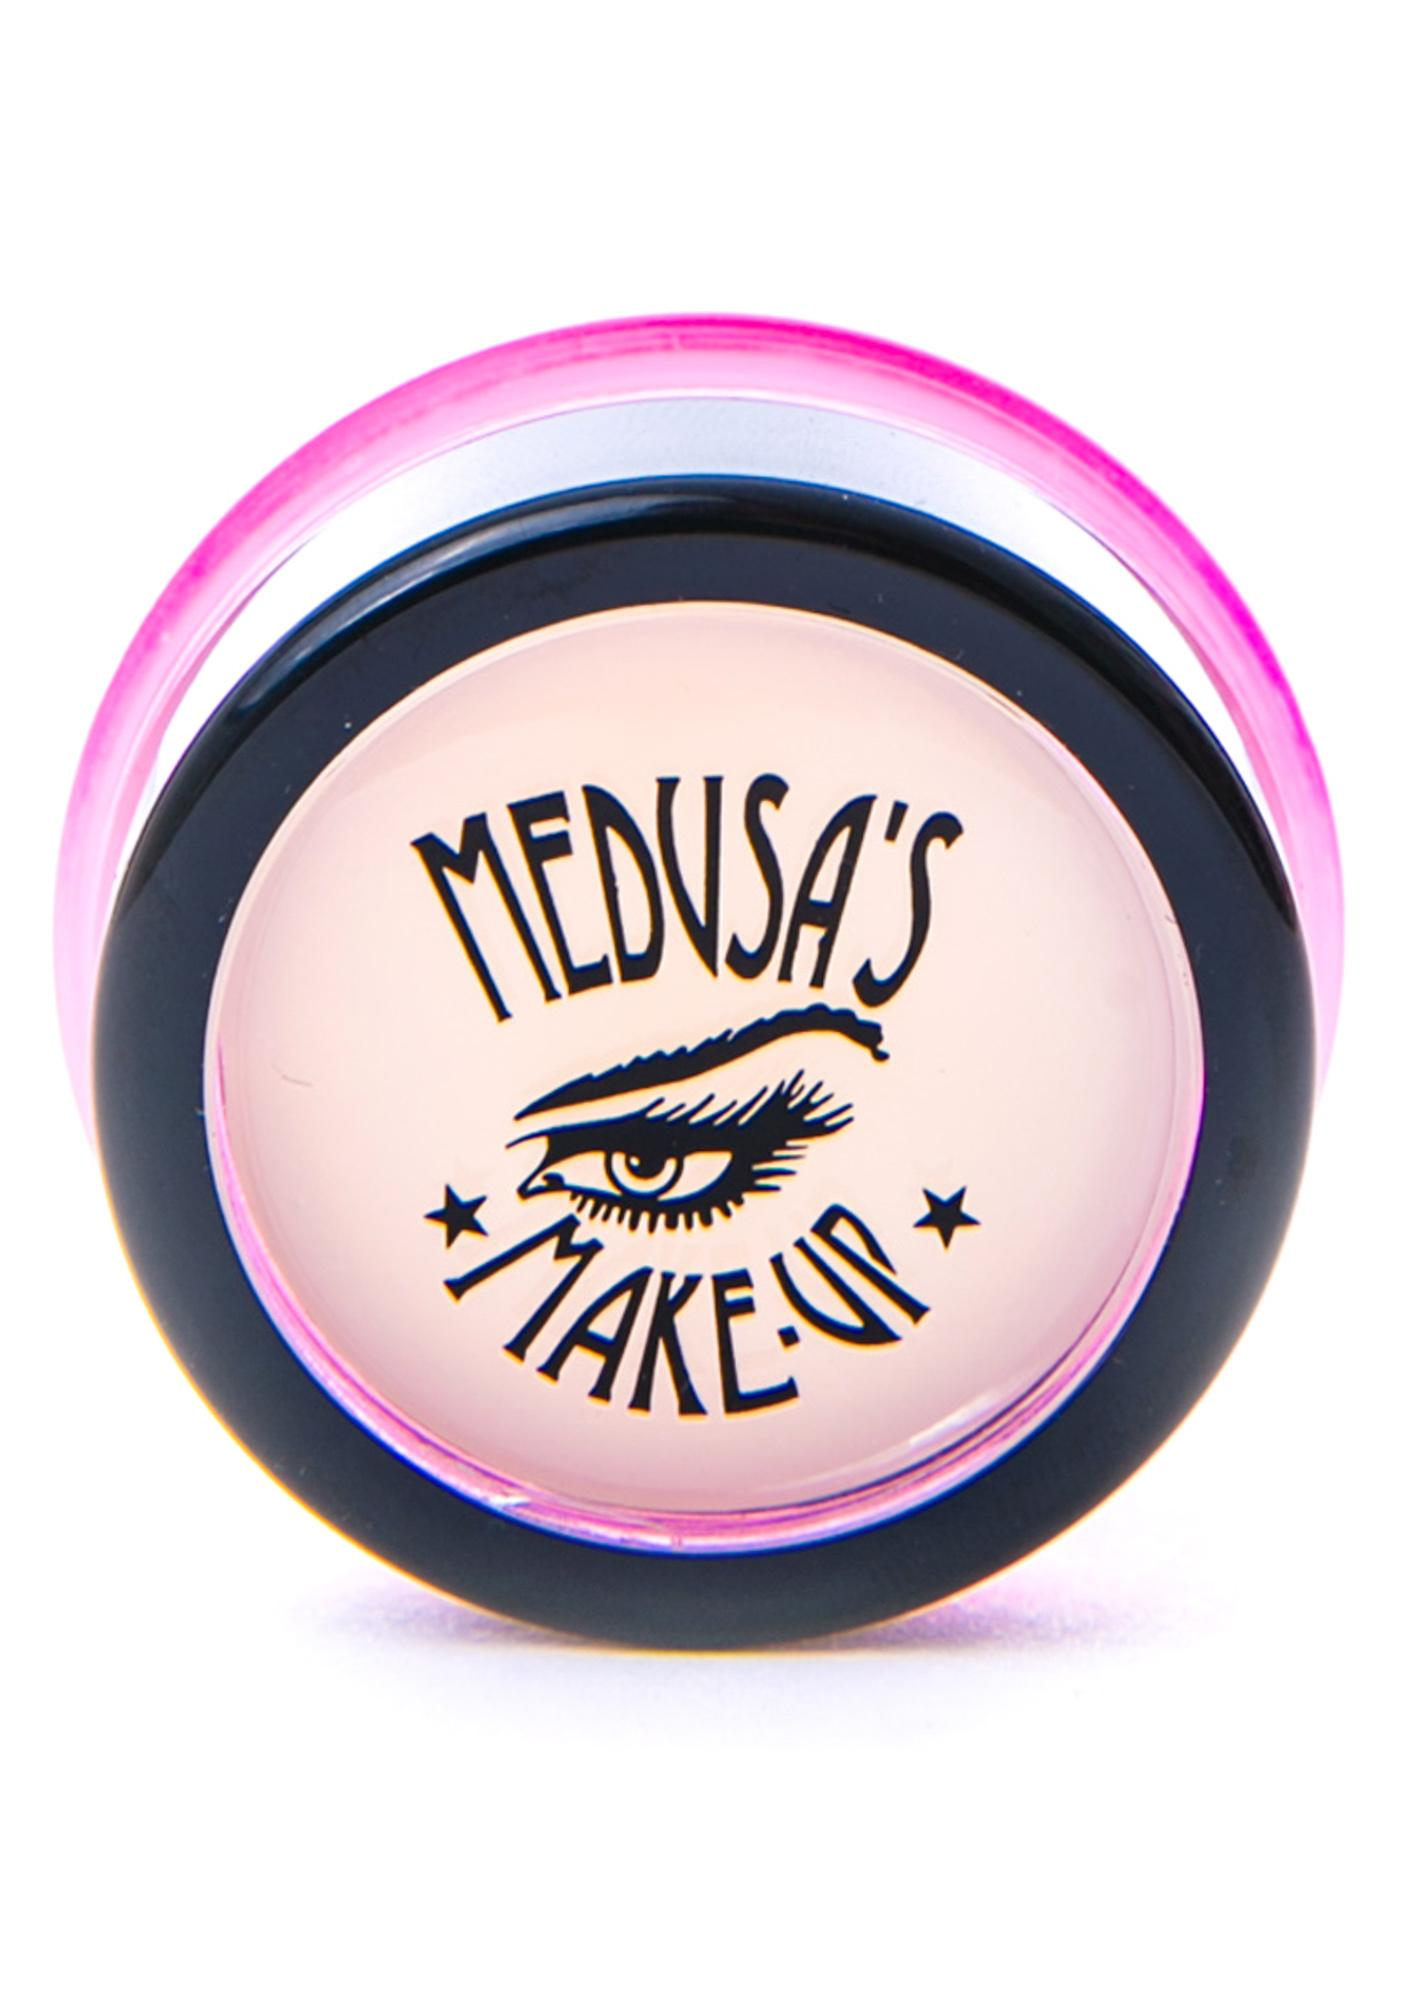 Medusa's Makeup The Fix Wax Primer